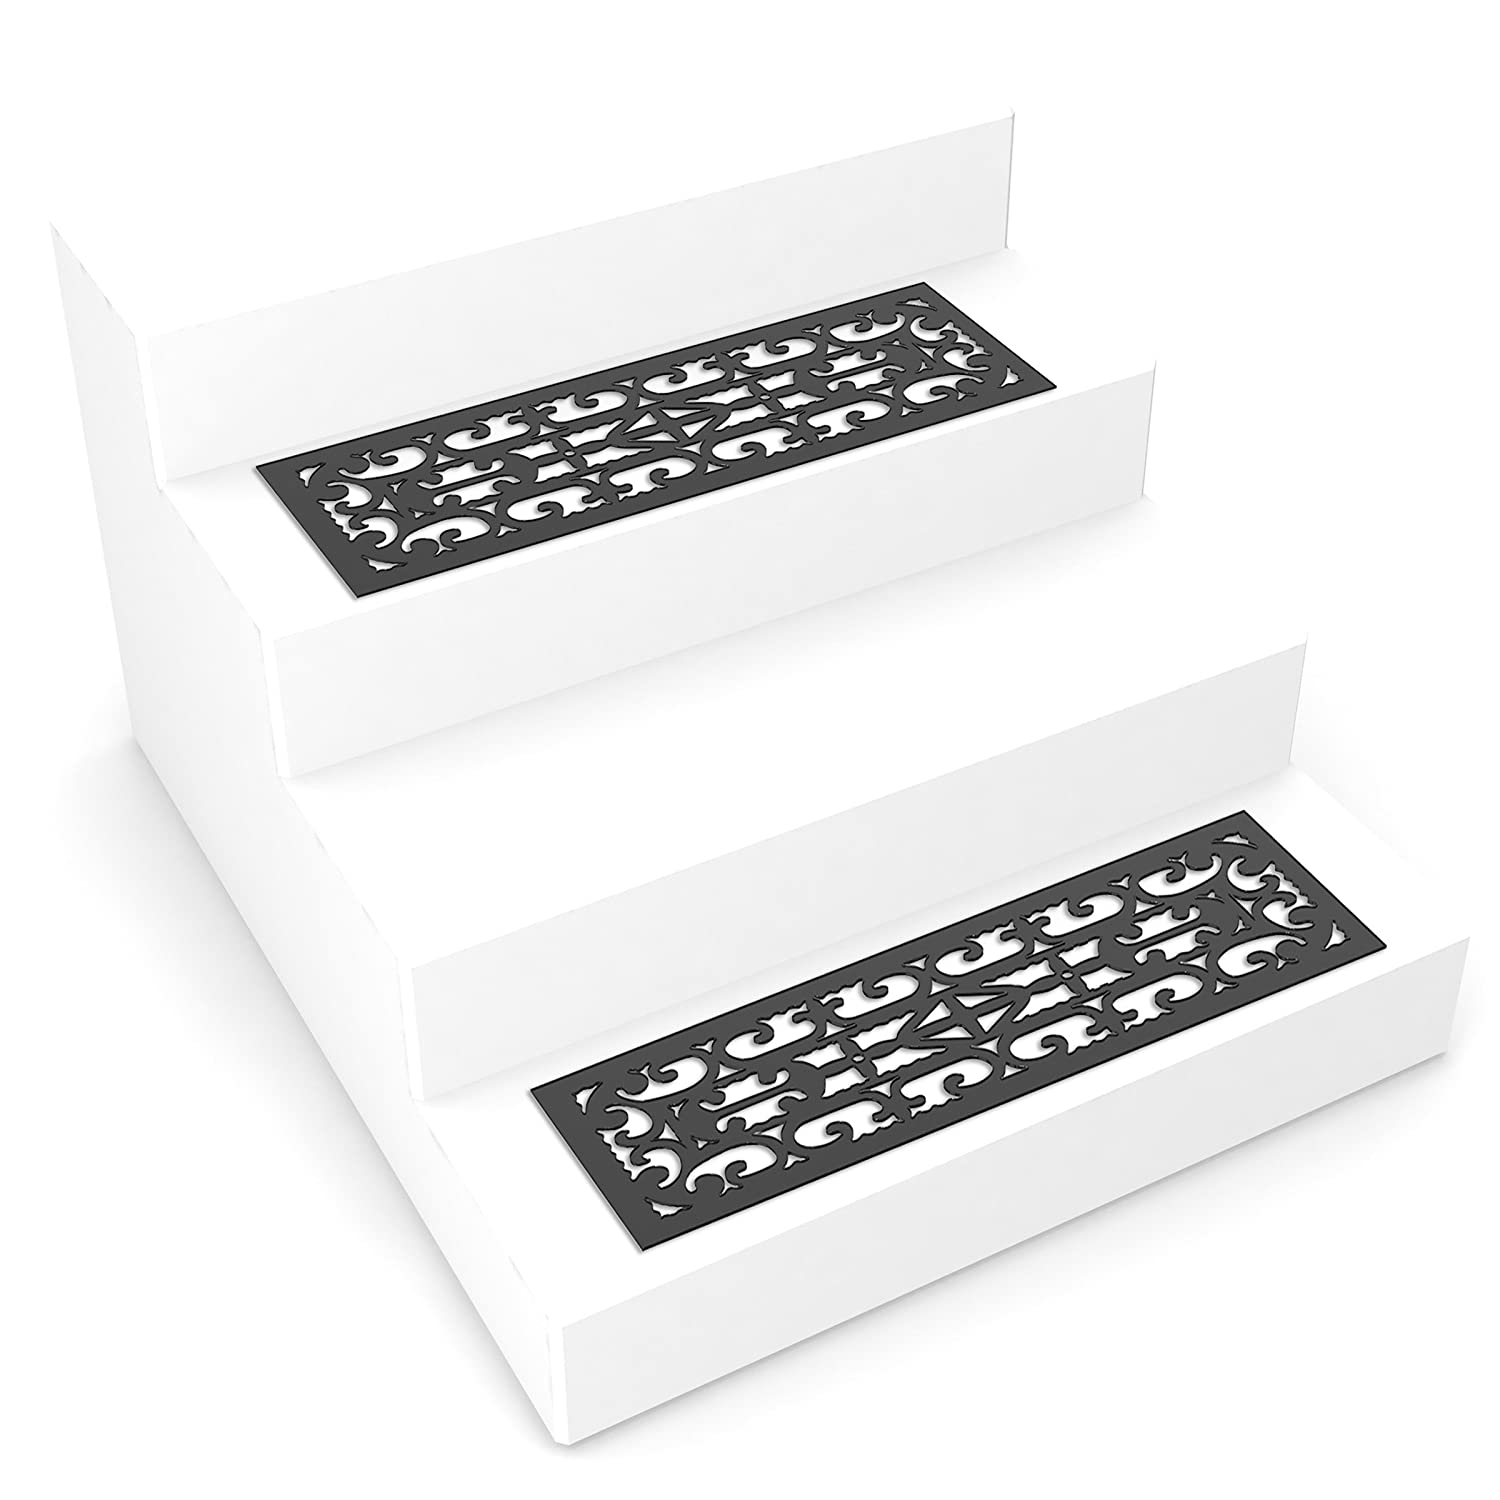 Pure Garden 82 YJ440B Non Slip Stair Traction Control Grip Heavy Duty Rubber Tread Ornate Design for Indoor Outdoor Use Mat Pads Set of 2 Black